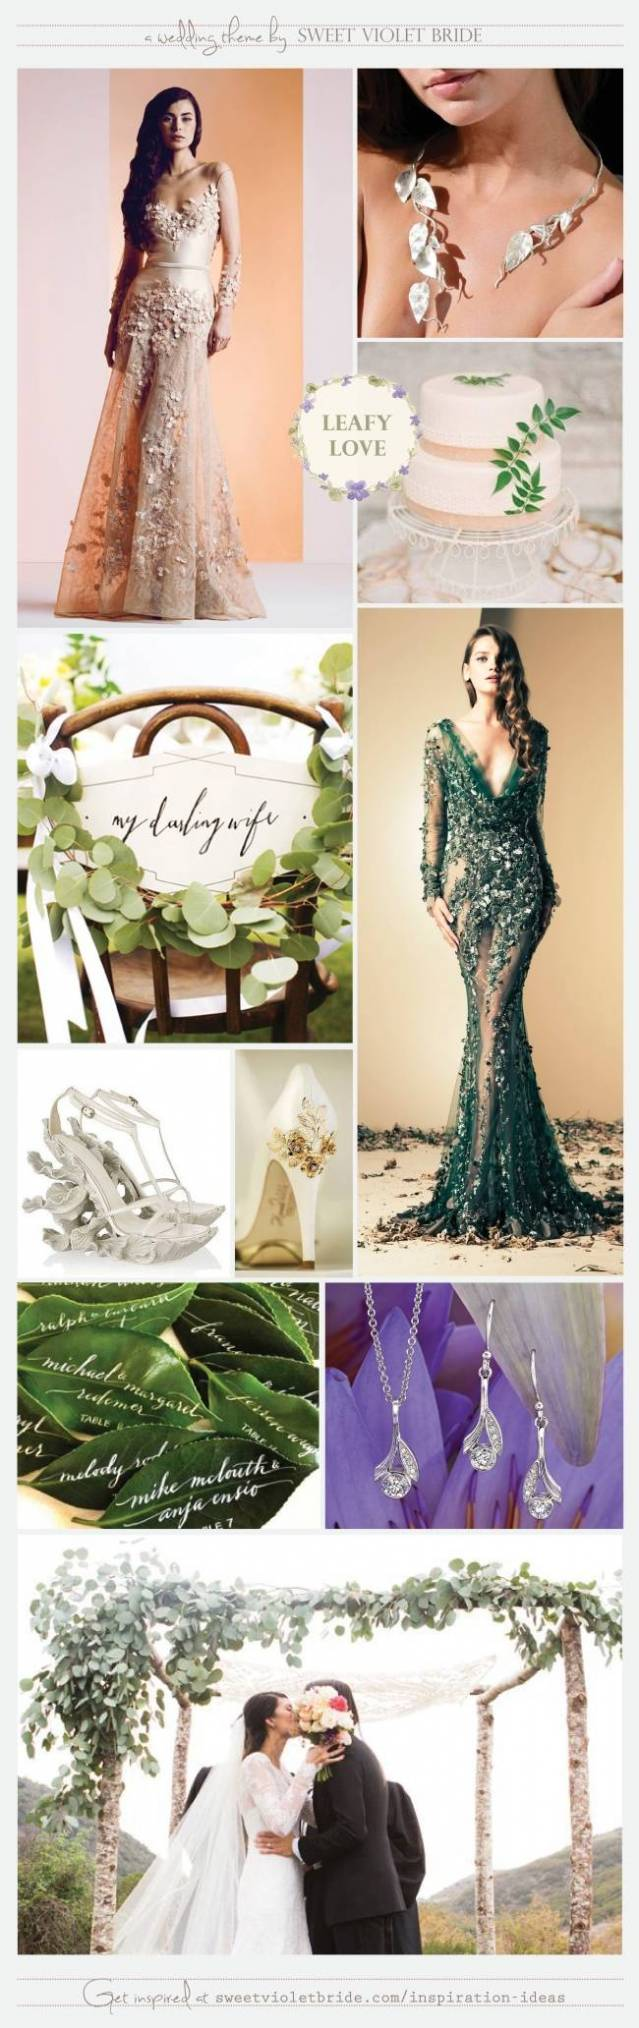 Wedding Inspiration Board #23: Leafy Love